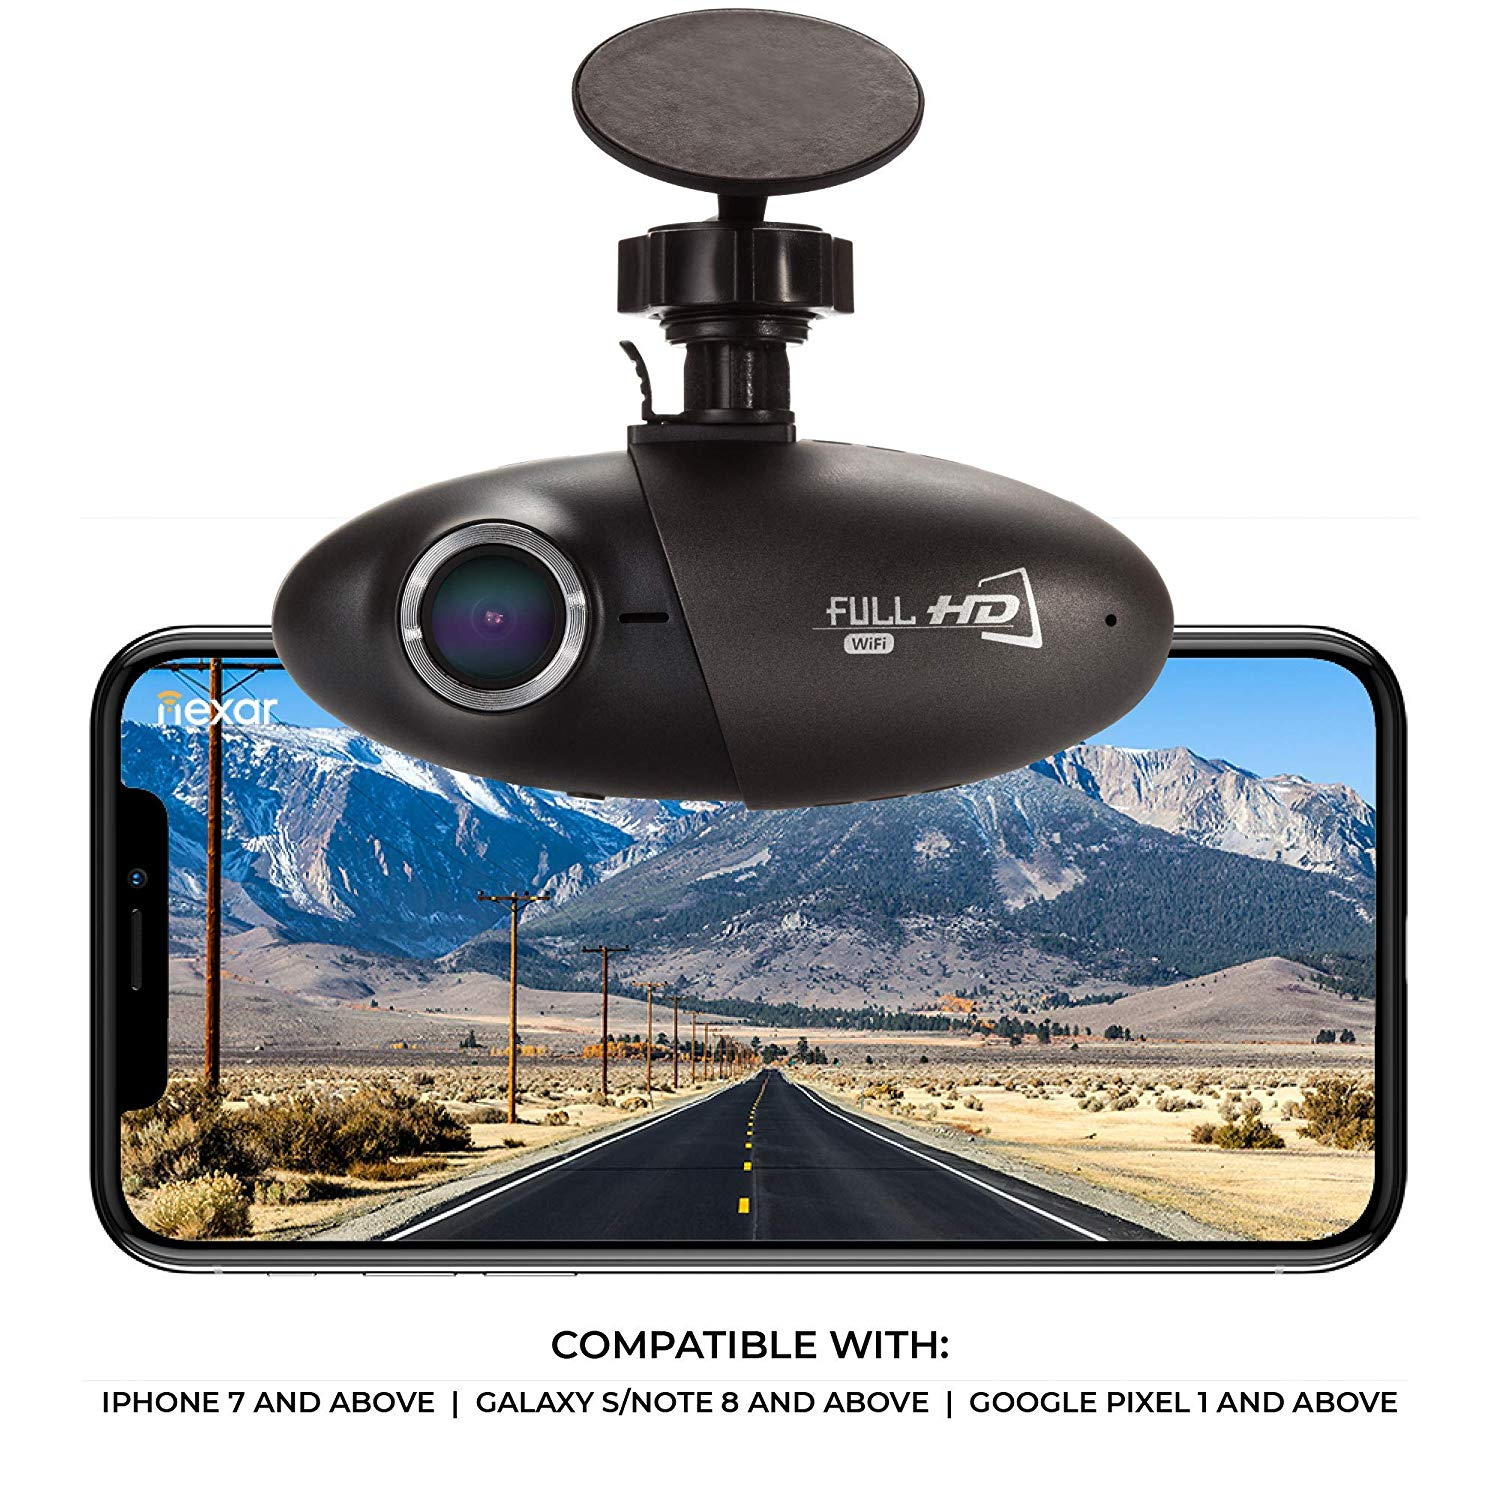 The Best Dash Cams According to Reddit - ReddGuide